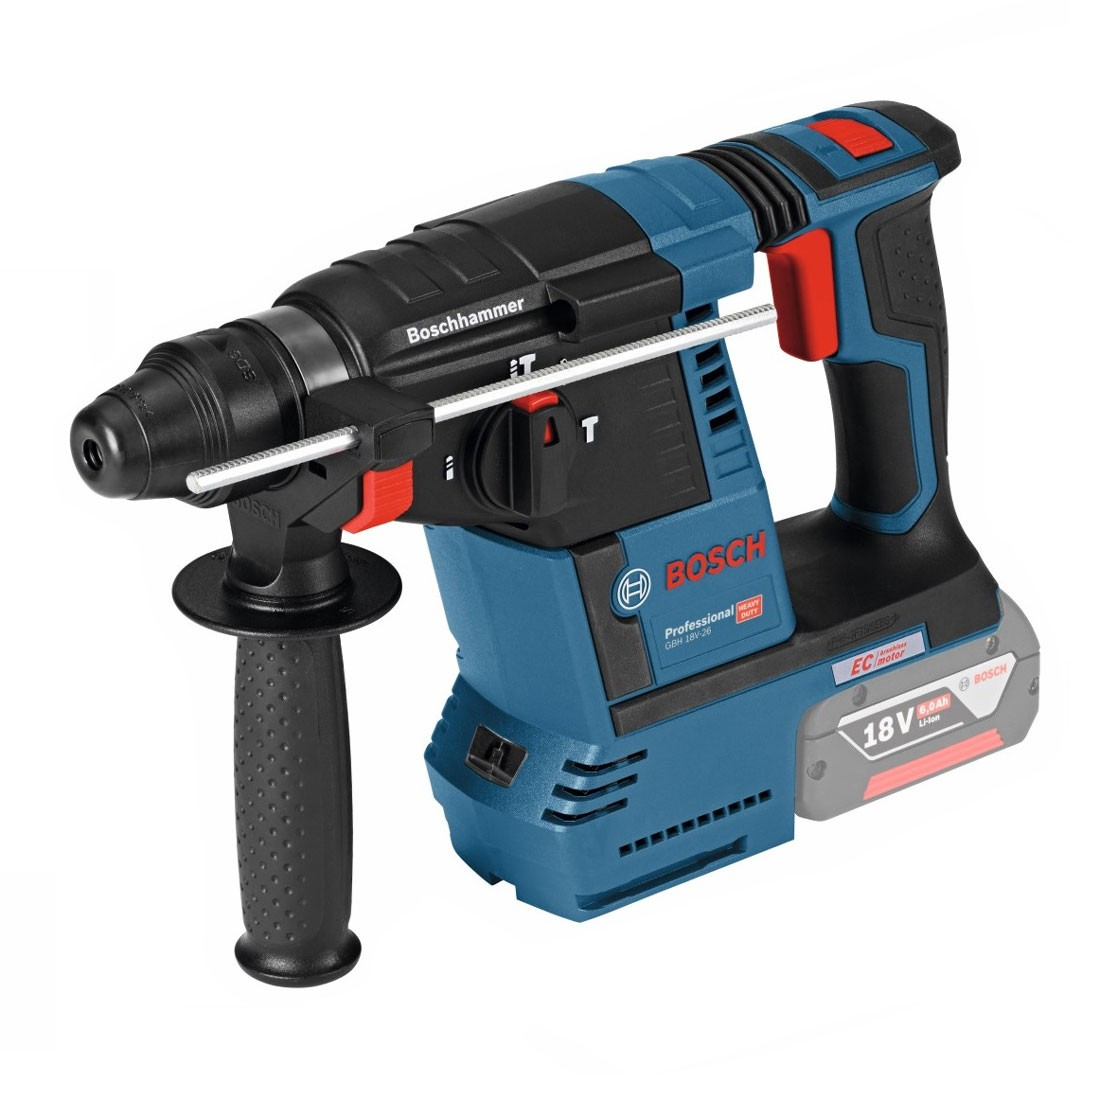 bosch gbh 18 v 26 sds plus brushless rotary hammer body only 0611909000 powertool world. Black Bedroom Furniture Sets. Home Design Ideas